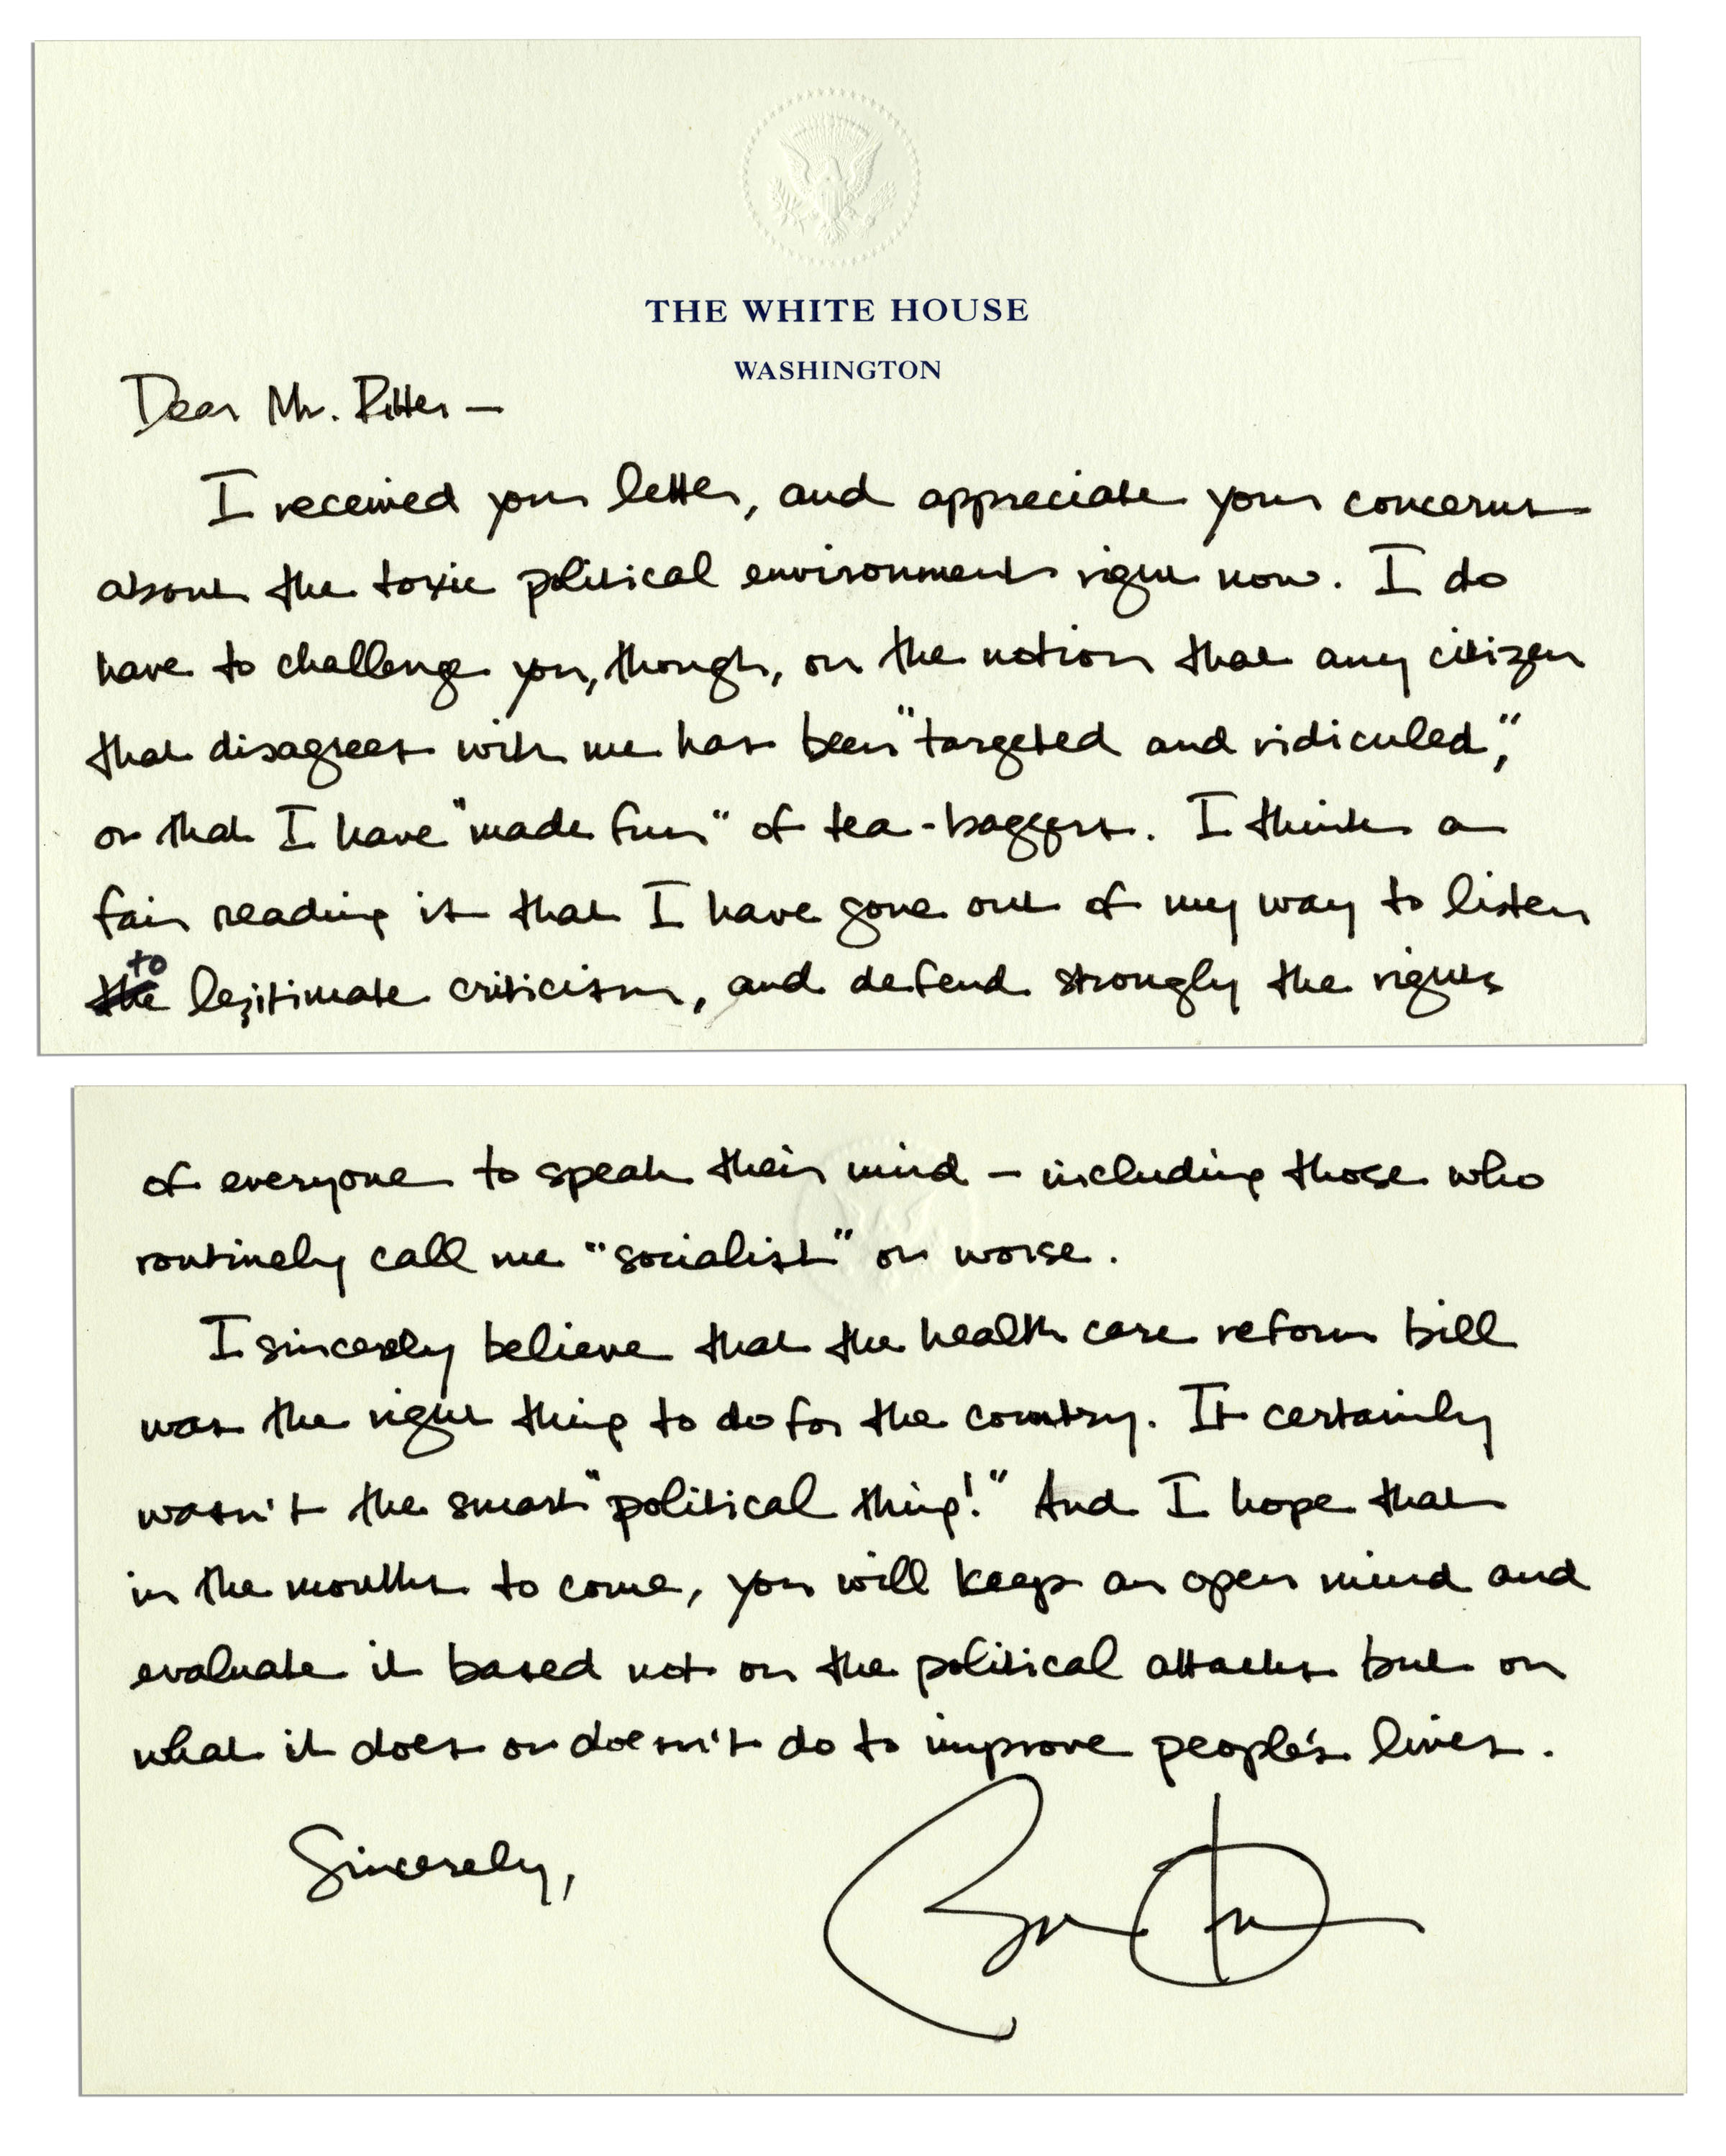 First on ABC: George W. Bush's Inauguration Day Letter to Barack Obama